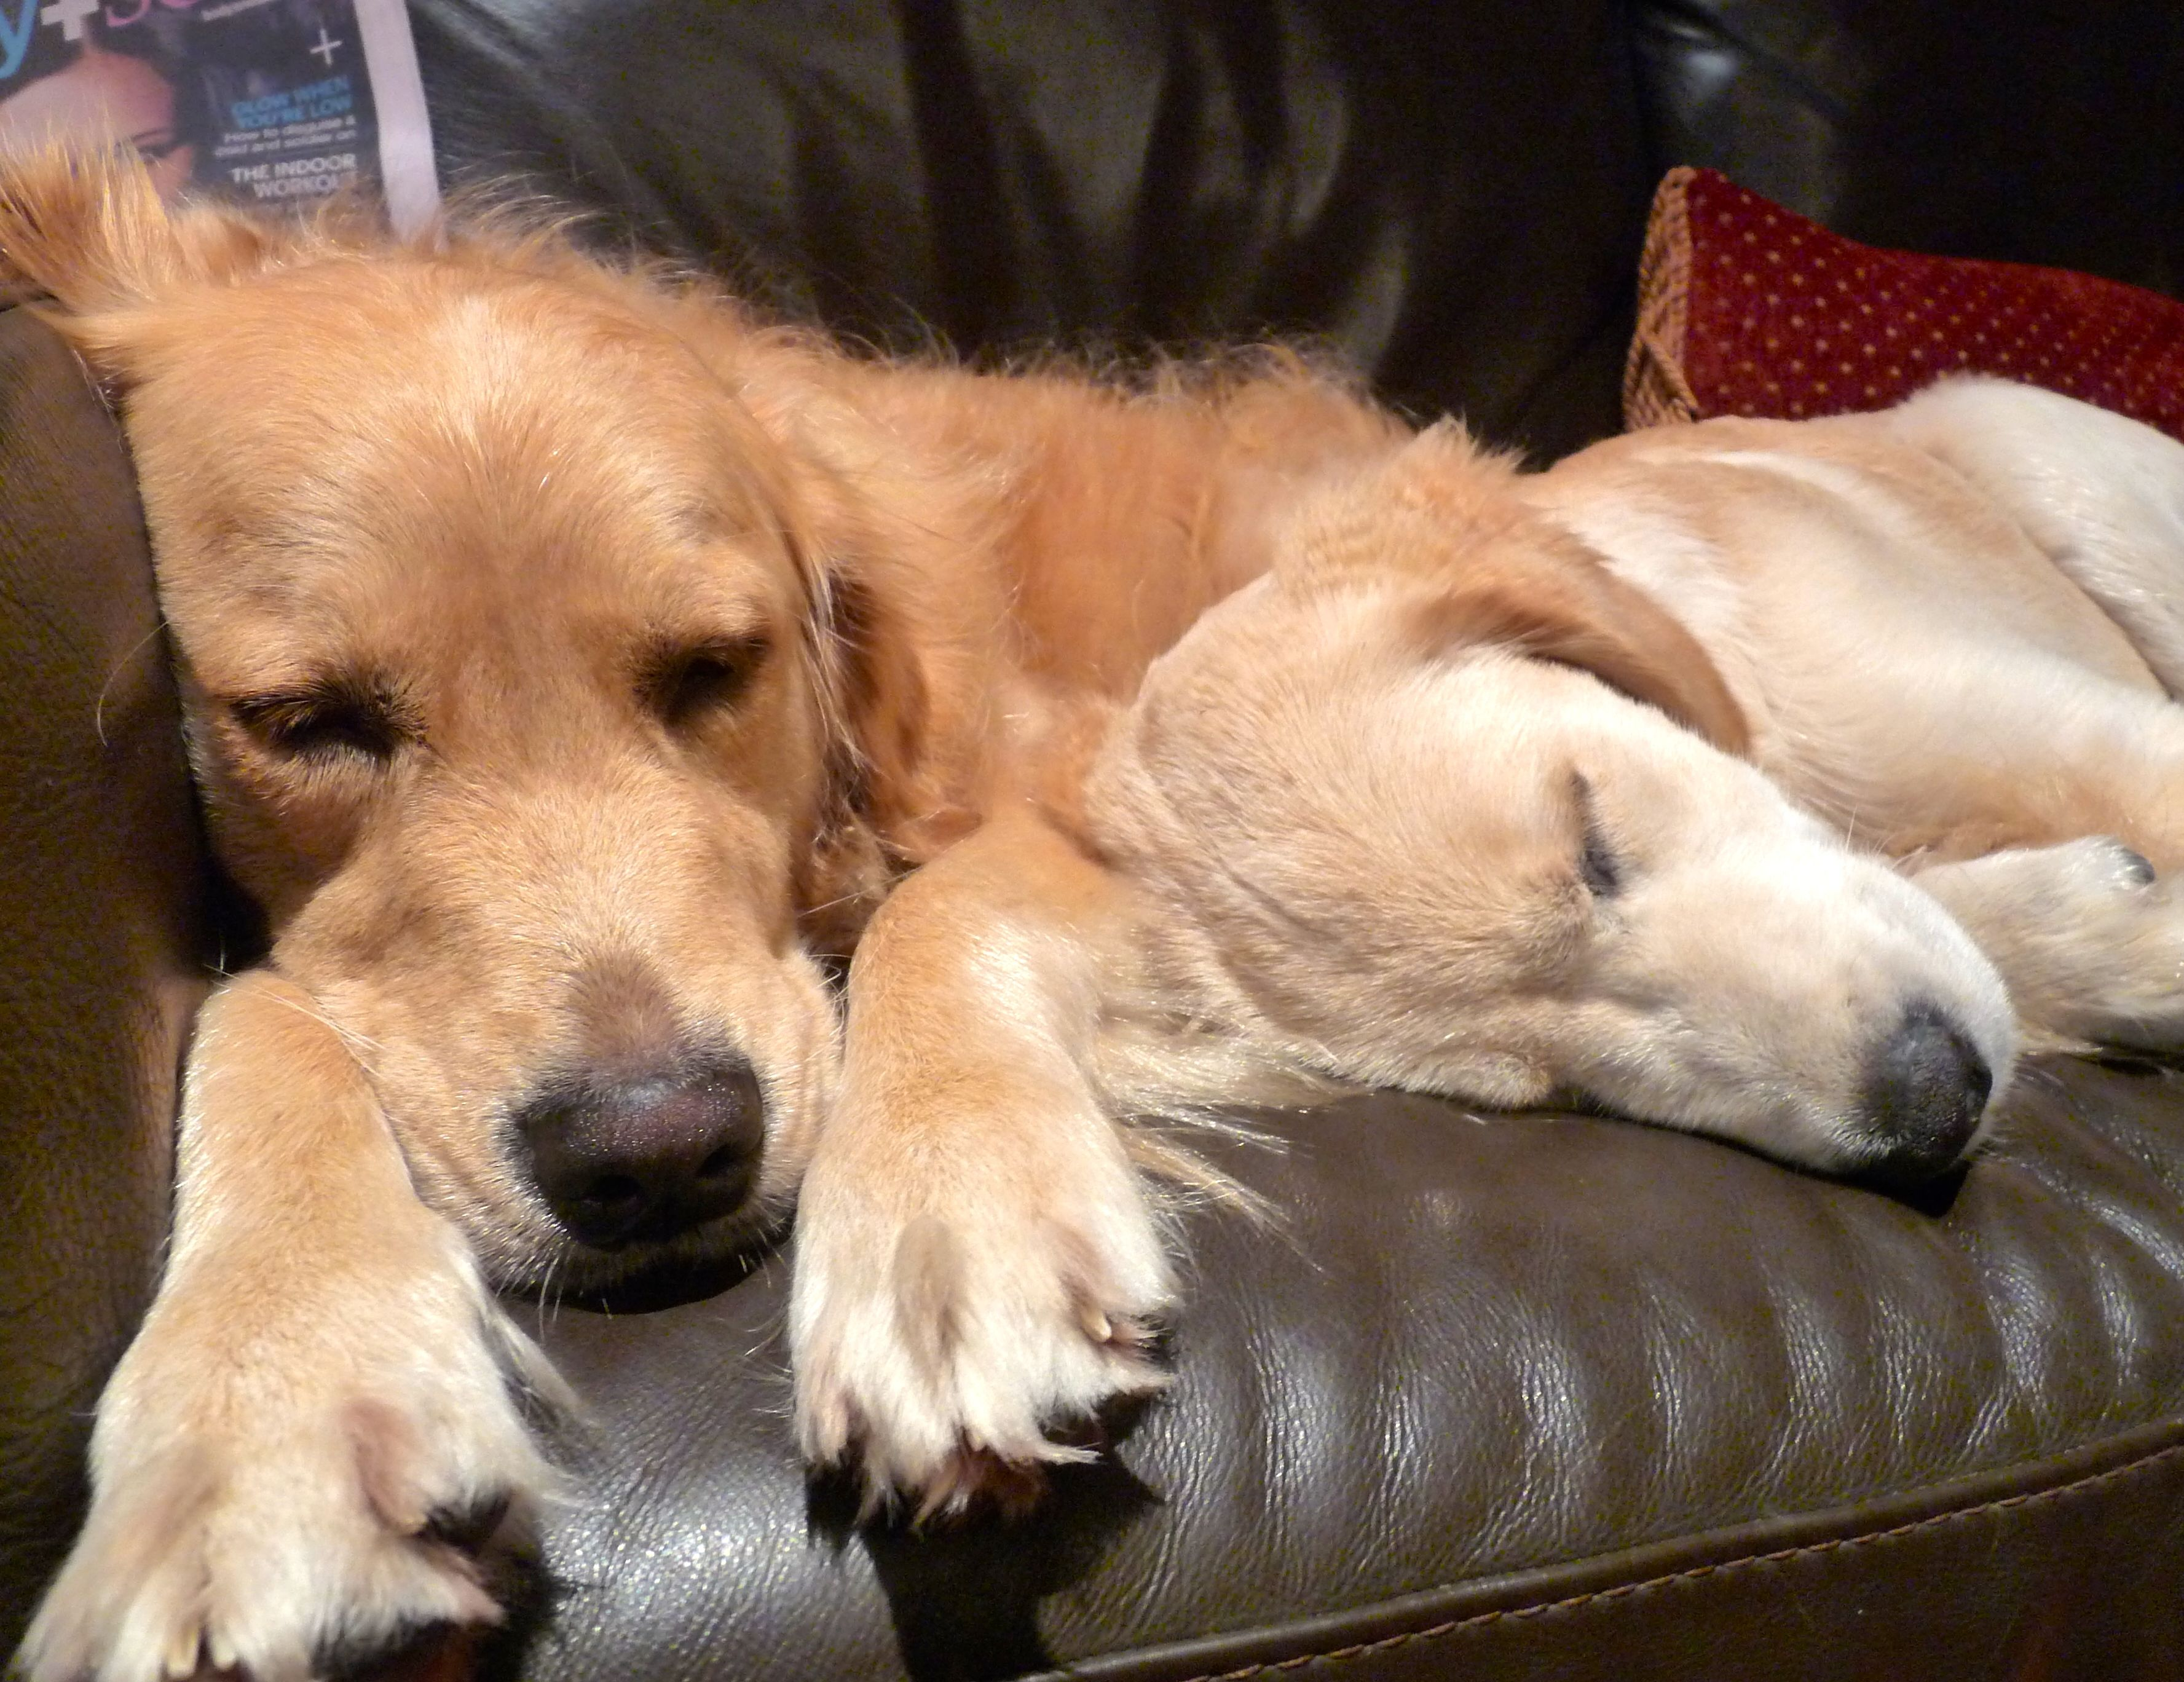 Couch potatoesthis is just what my golden loves to do